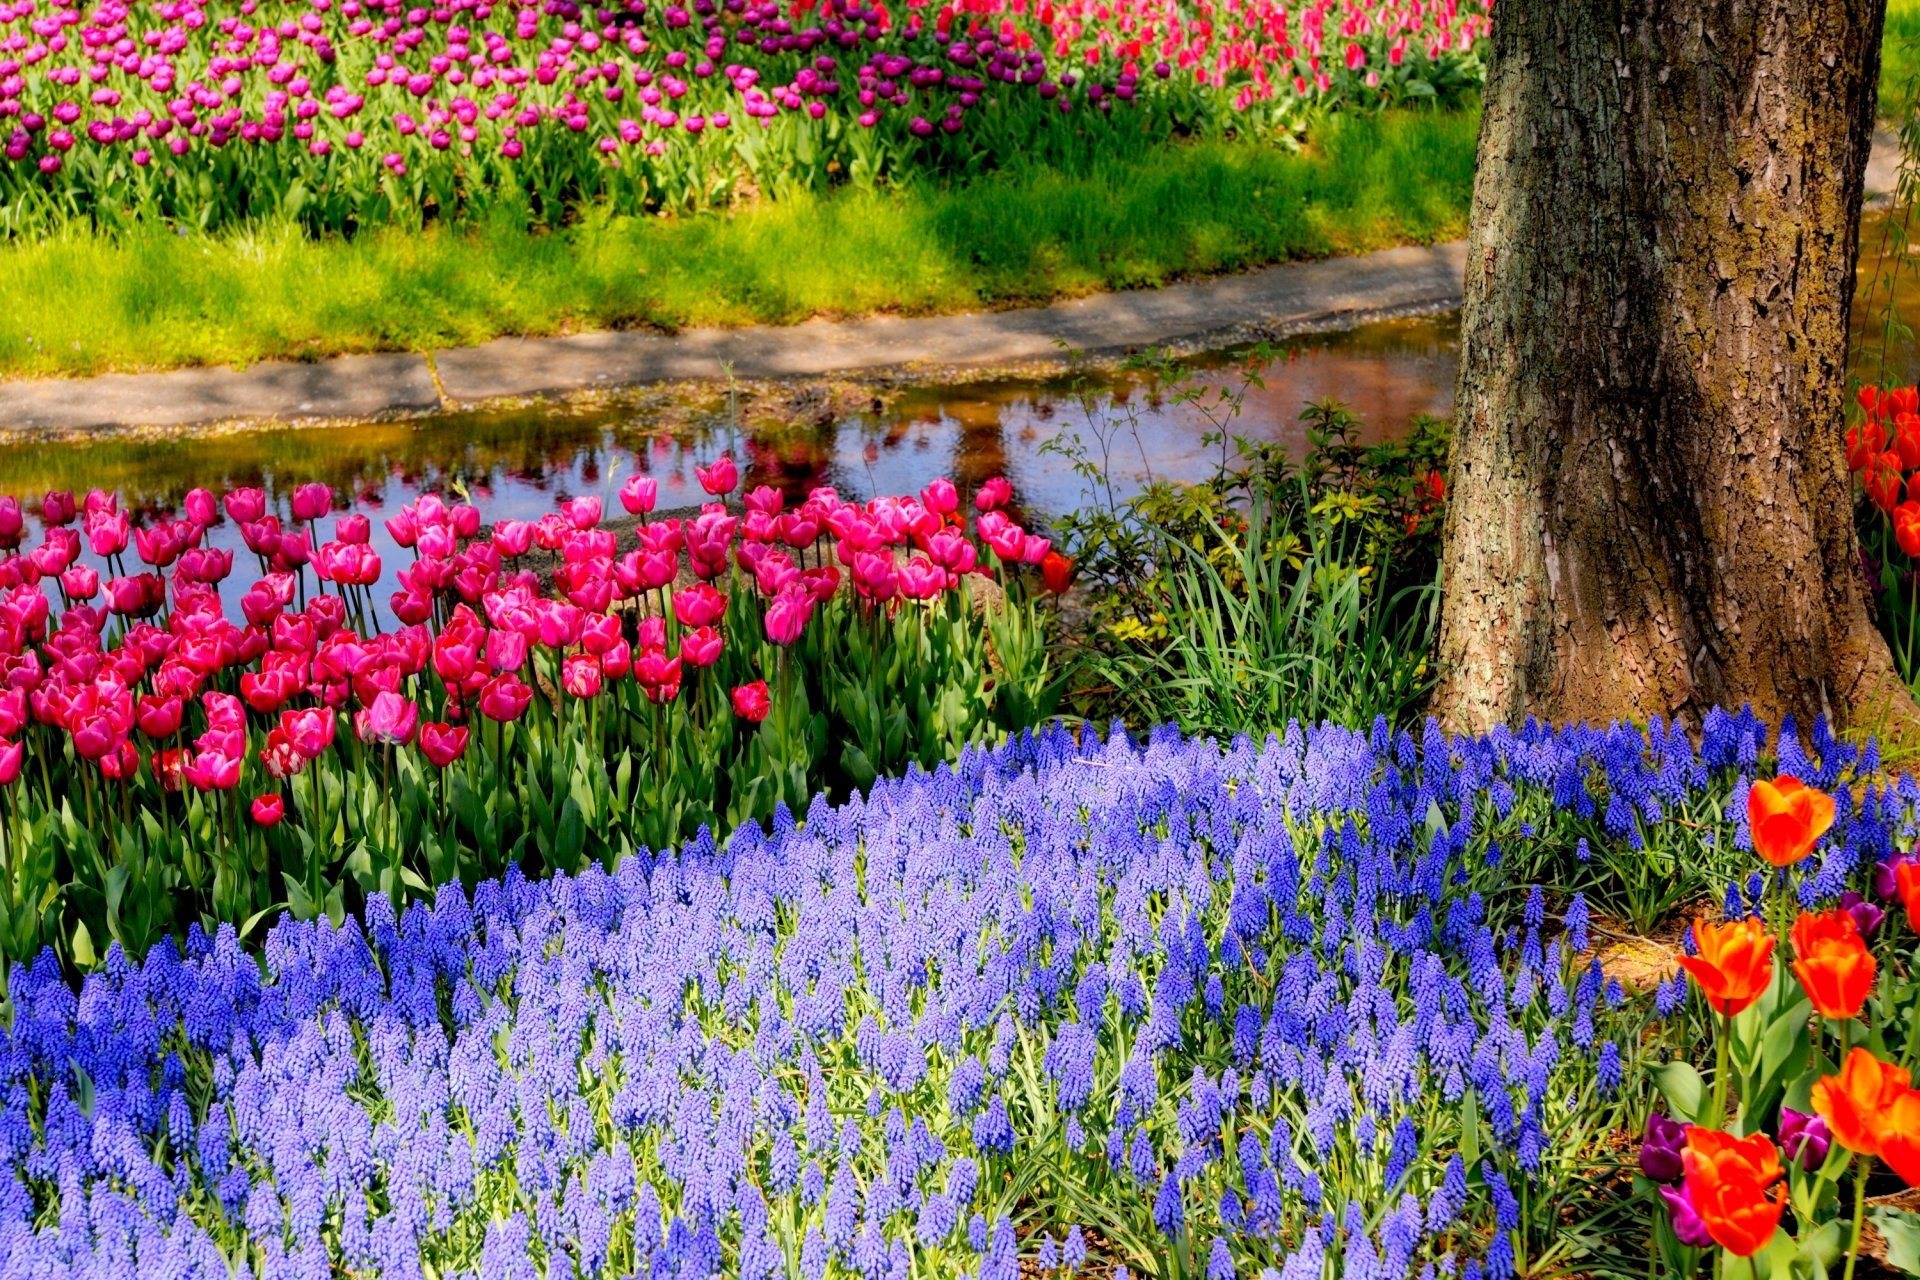 Earth - Spring  Earth Park Tulip Colors Colorful Muscari Wallpaper